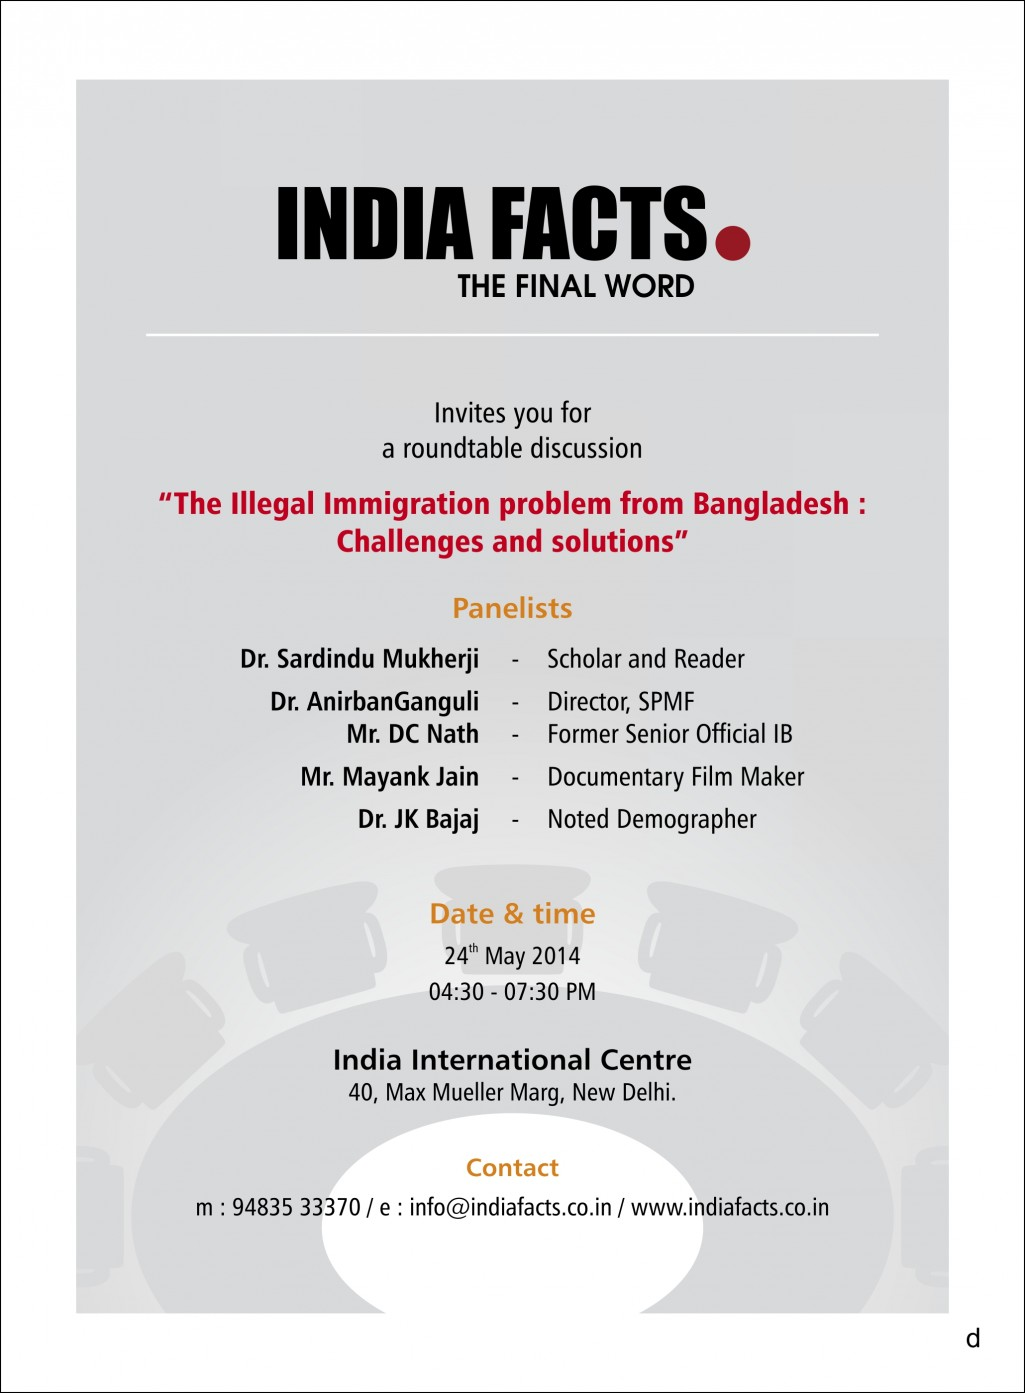 Announcing IndiaFacts Roundtable in Delhi: 24 May 2014